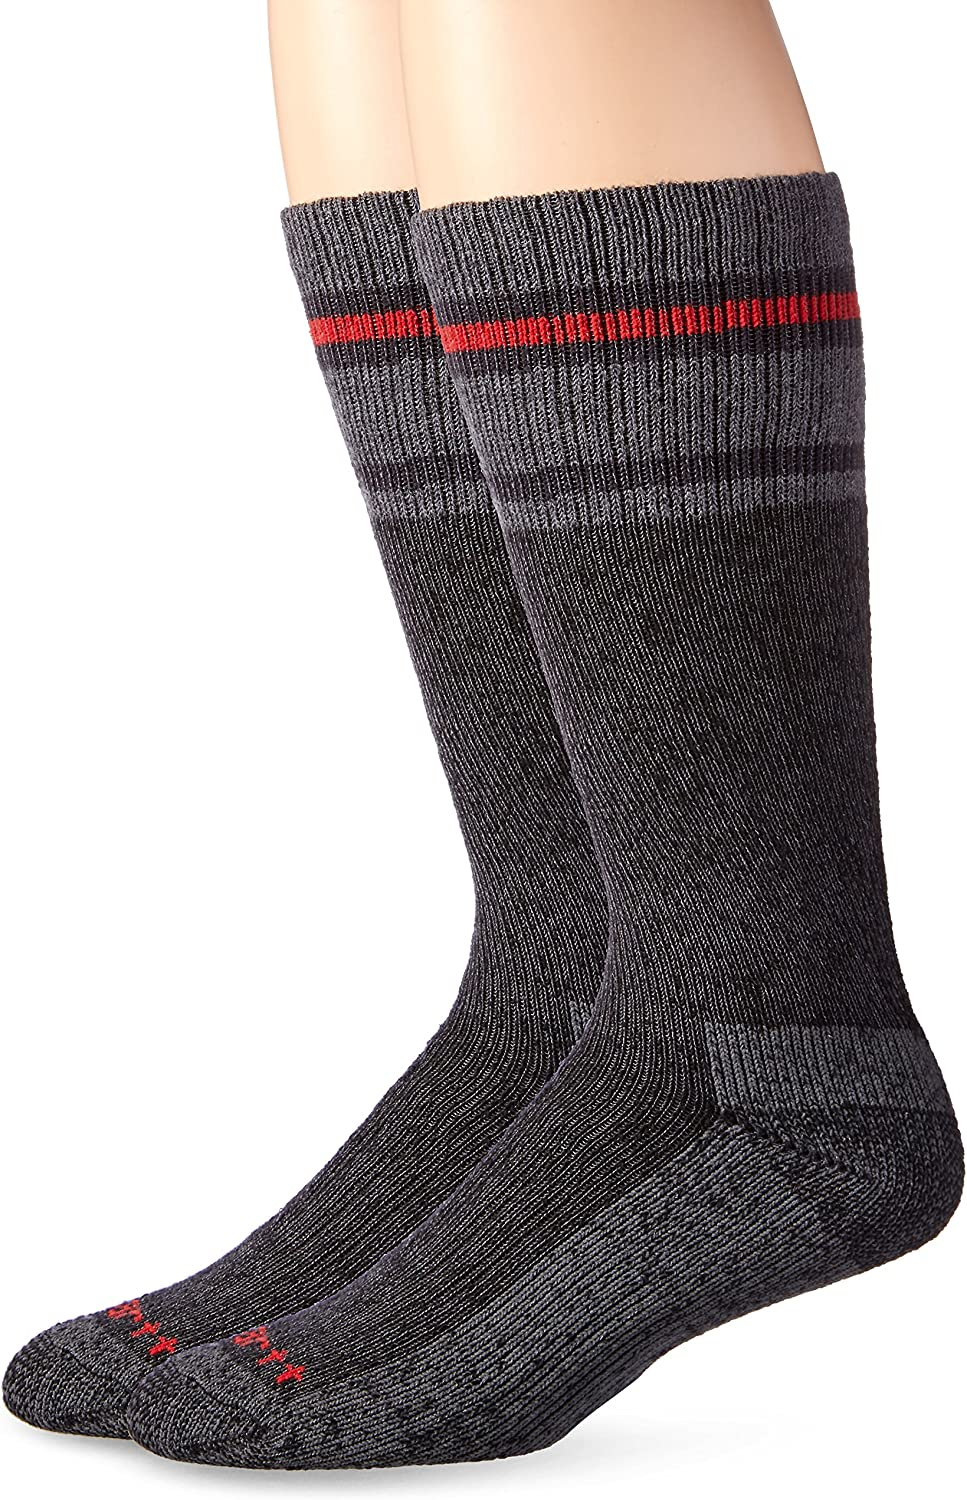 Carhartt Men's Heavy Duty Thermal Crew 2-Pair Socks